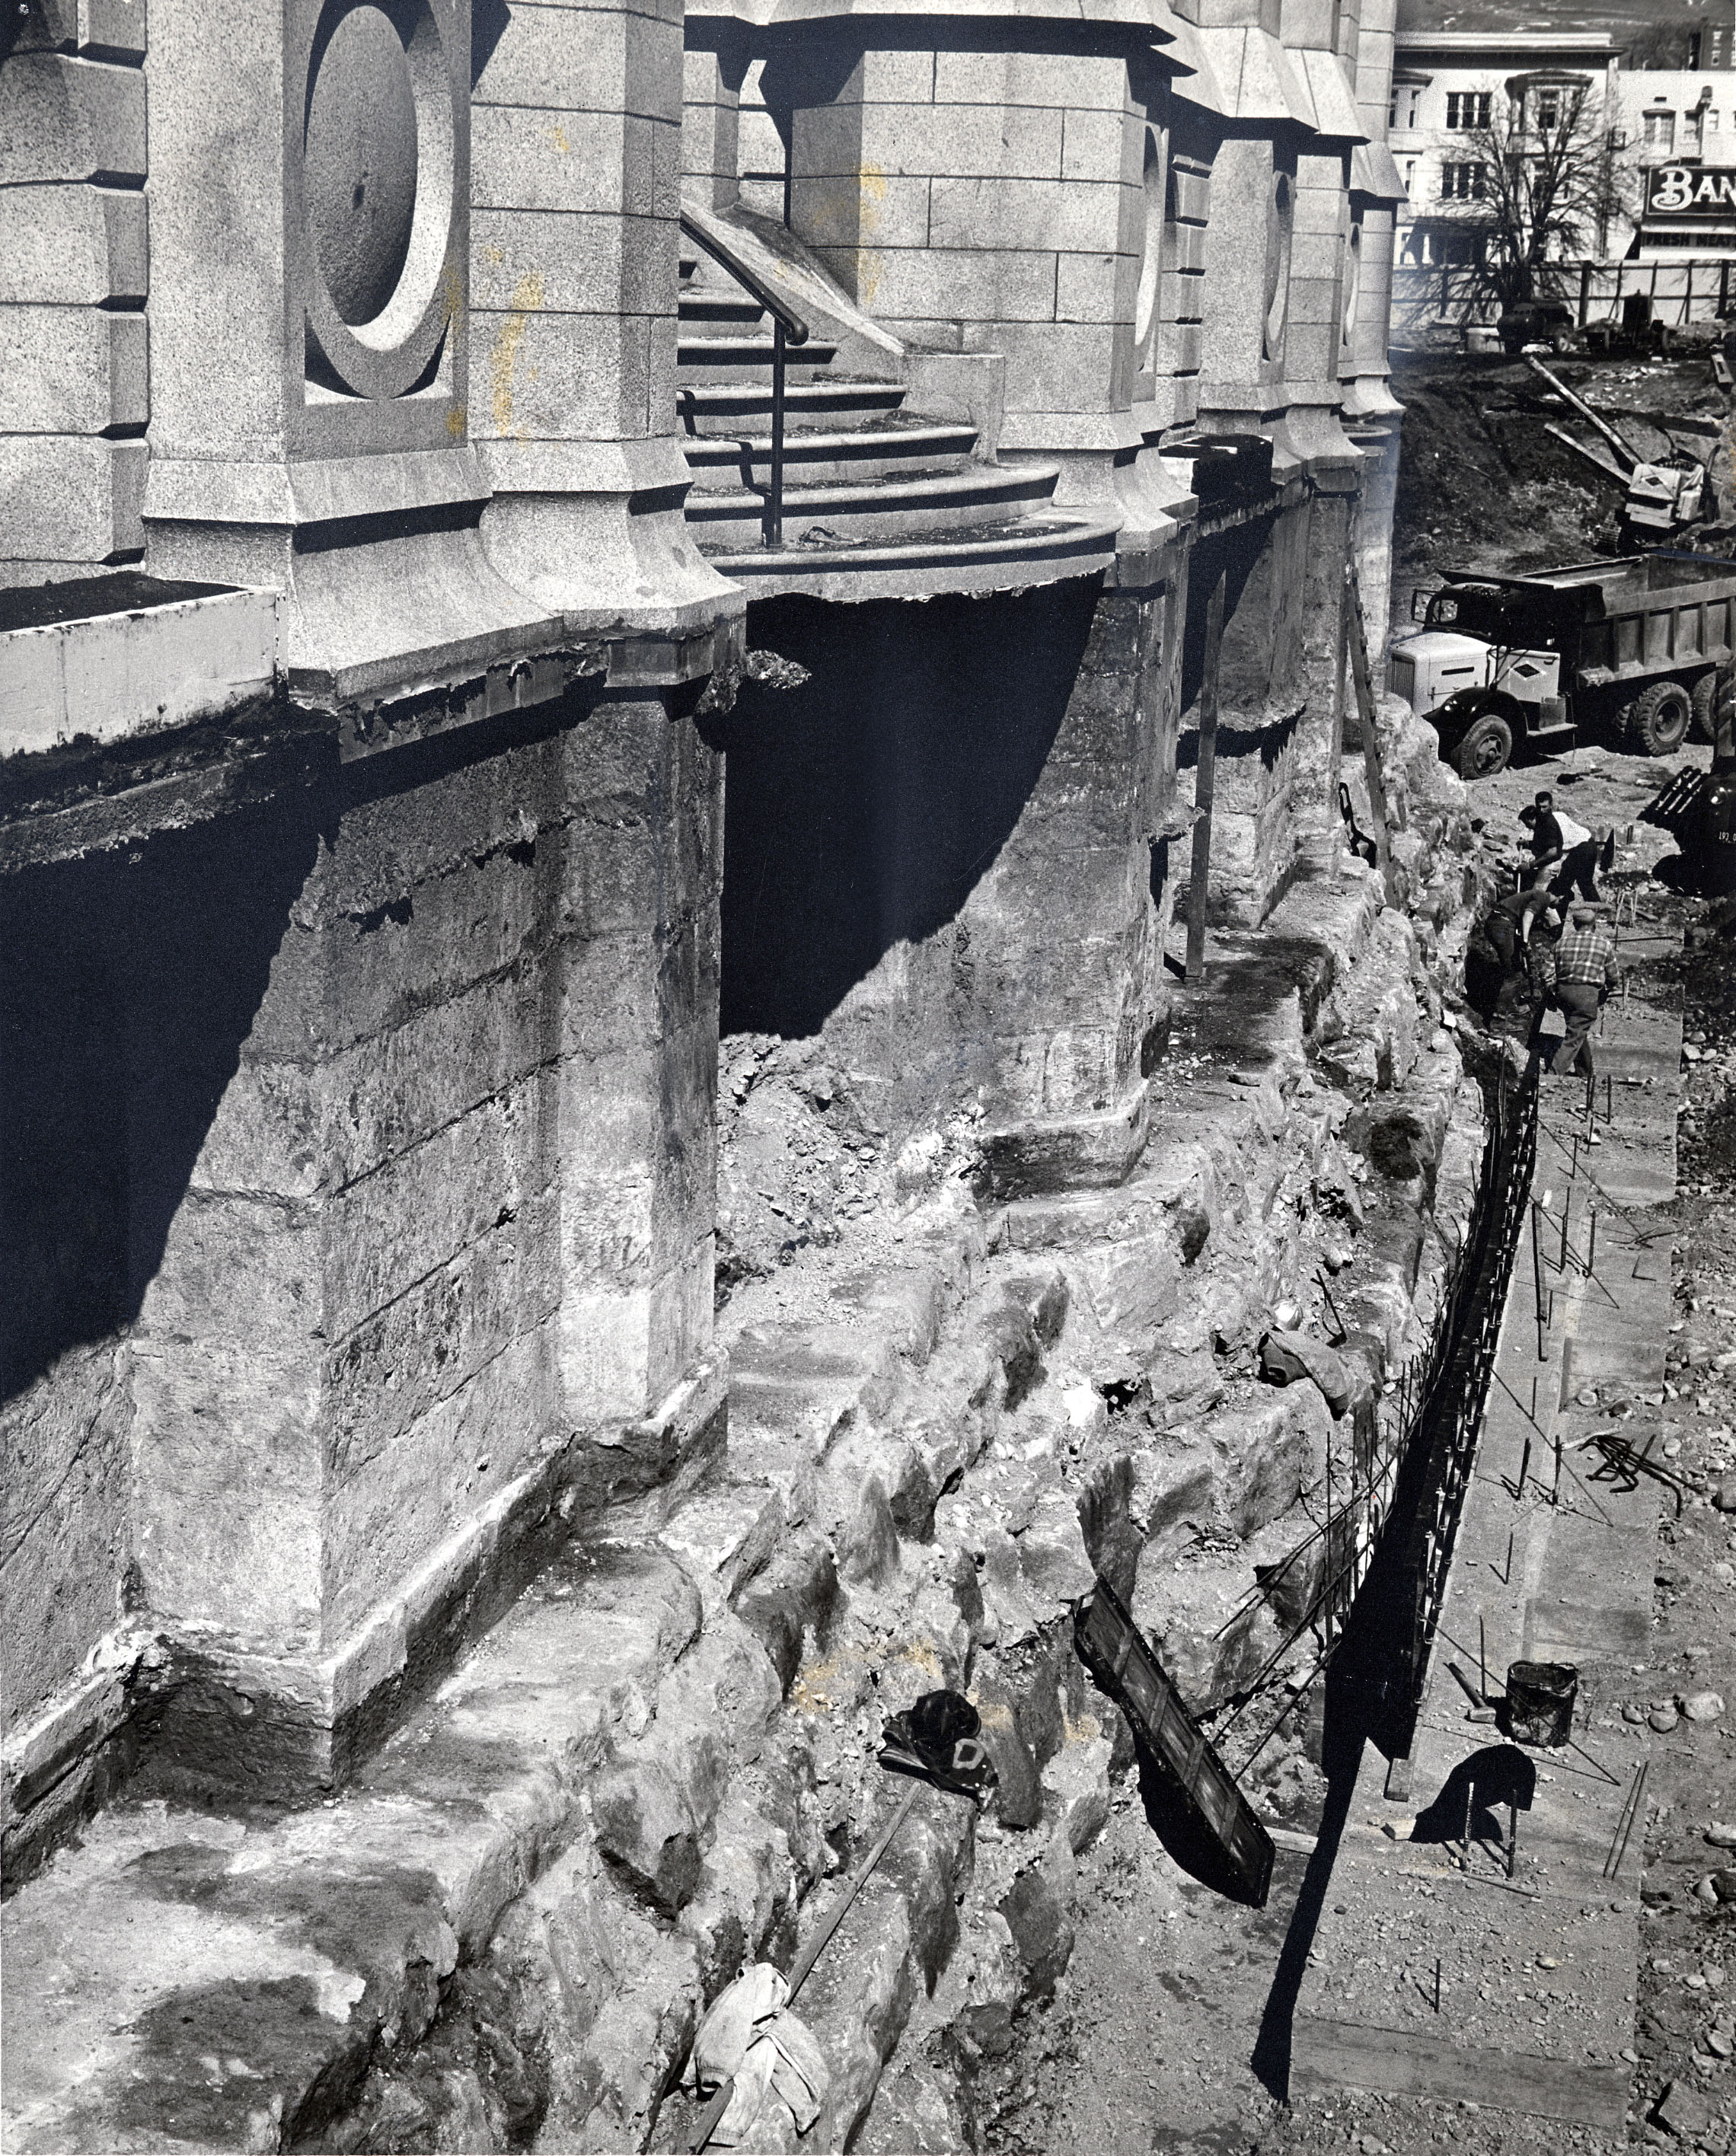 The depth and strength of the Salt Lake Temple foundation, 30 feet deep, is exposed by excavators in March 30, 1963.